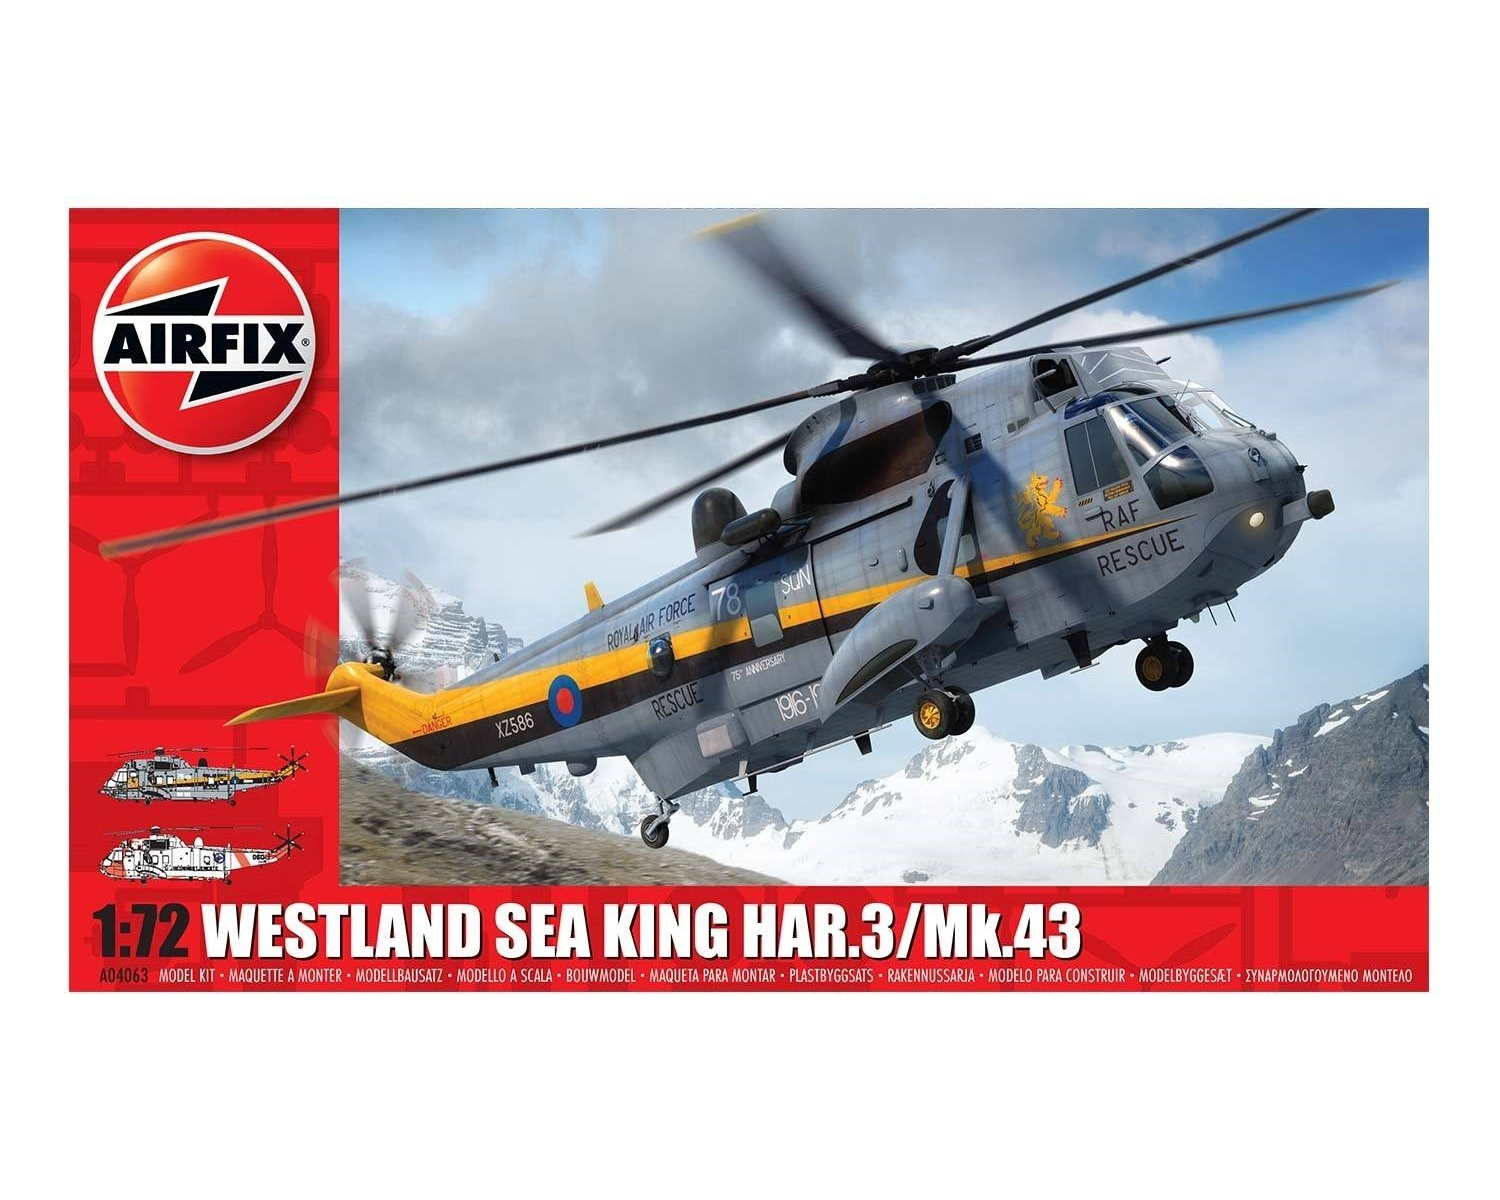 WESTLAND SEA KING HAR. 3/MK. 43